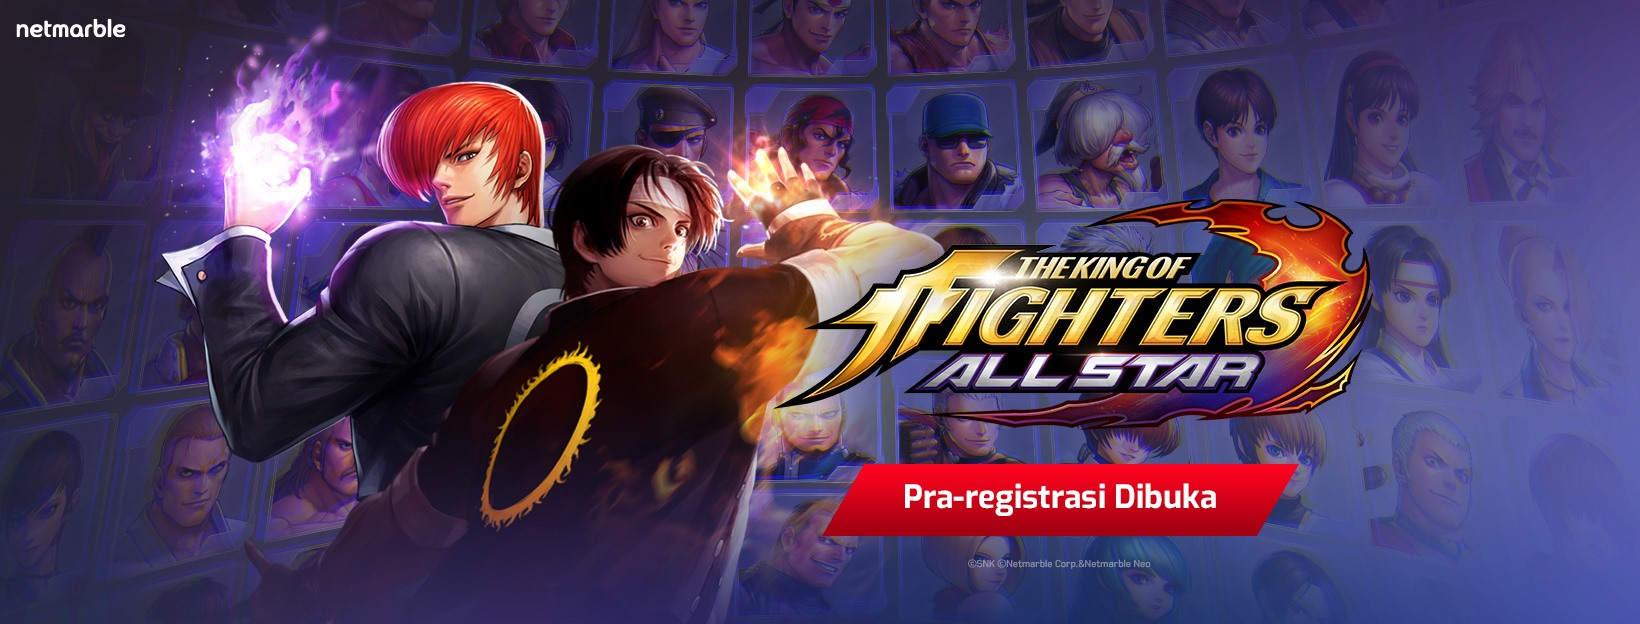 Pra-Pendaftaran The King of Fighters ALLSTAR Dibuka! Berhadiah Honda PCX & iPhone 11!